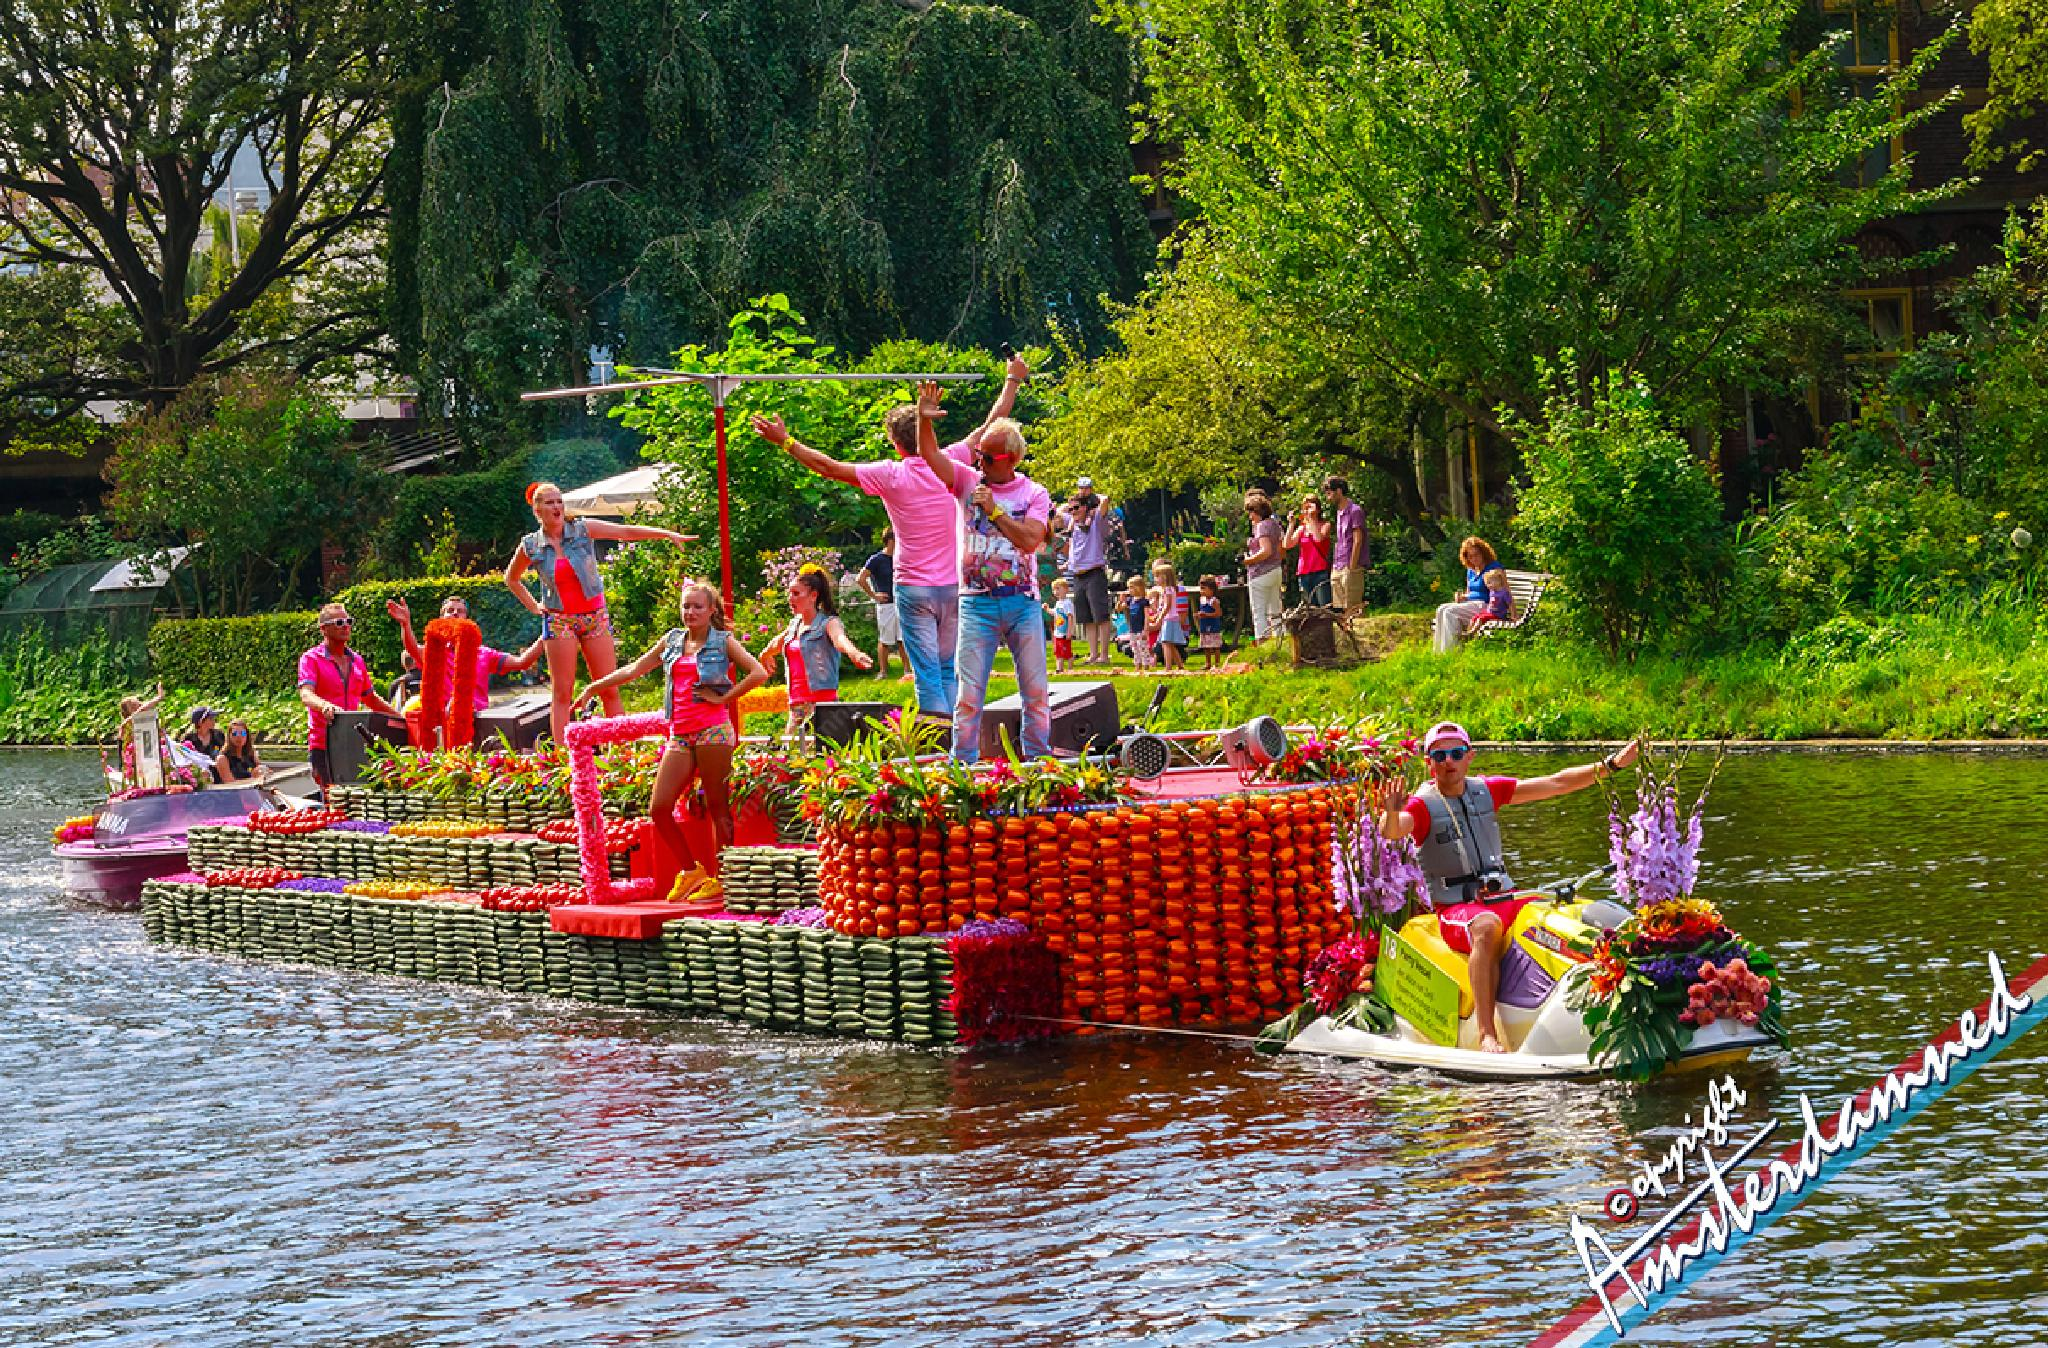 Photo in Street Photography #varend corso #varend corso westland #amsterdamned #holland #zuid-holland #delft #the netherlands #varend corso westland 2014 #boat #scooter #people #cucumber #flowers #cucumbers #pepper bell #pepper bells #water scooter #singers #dancing